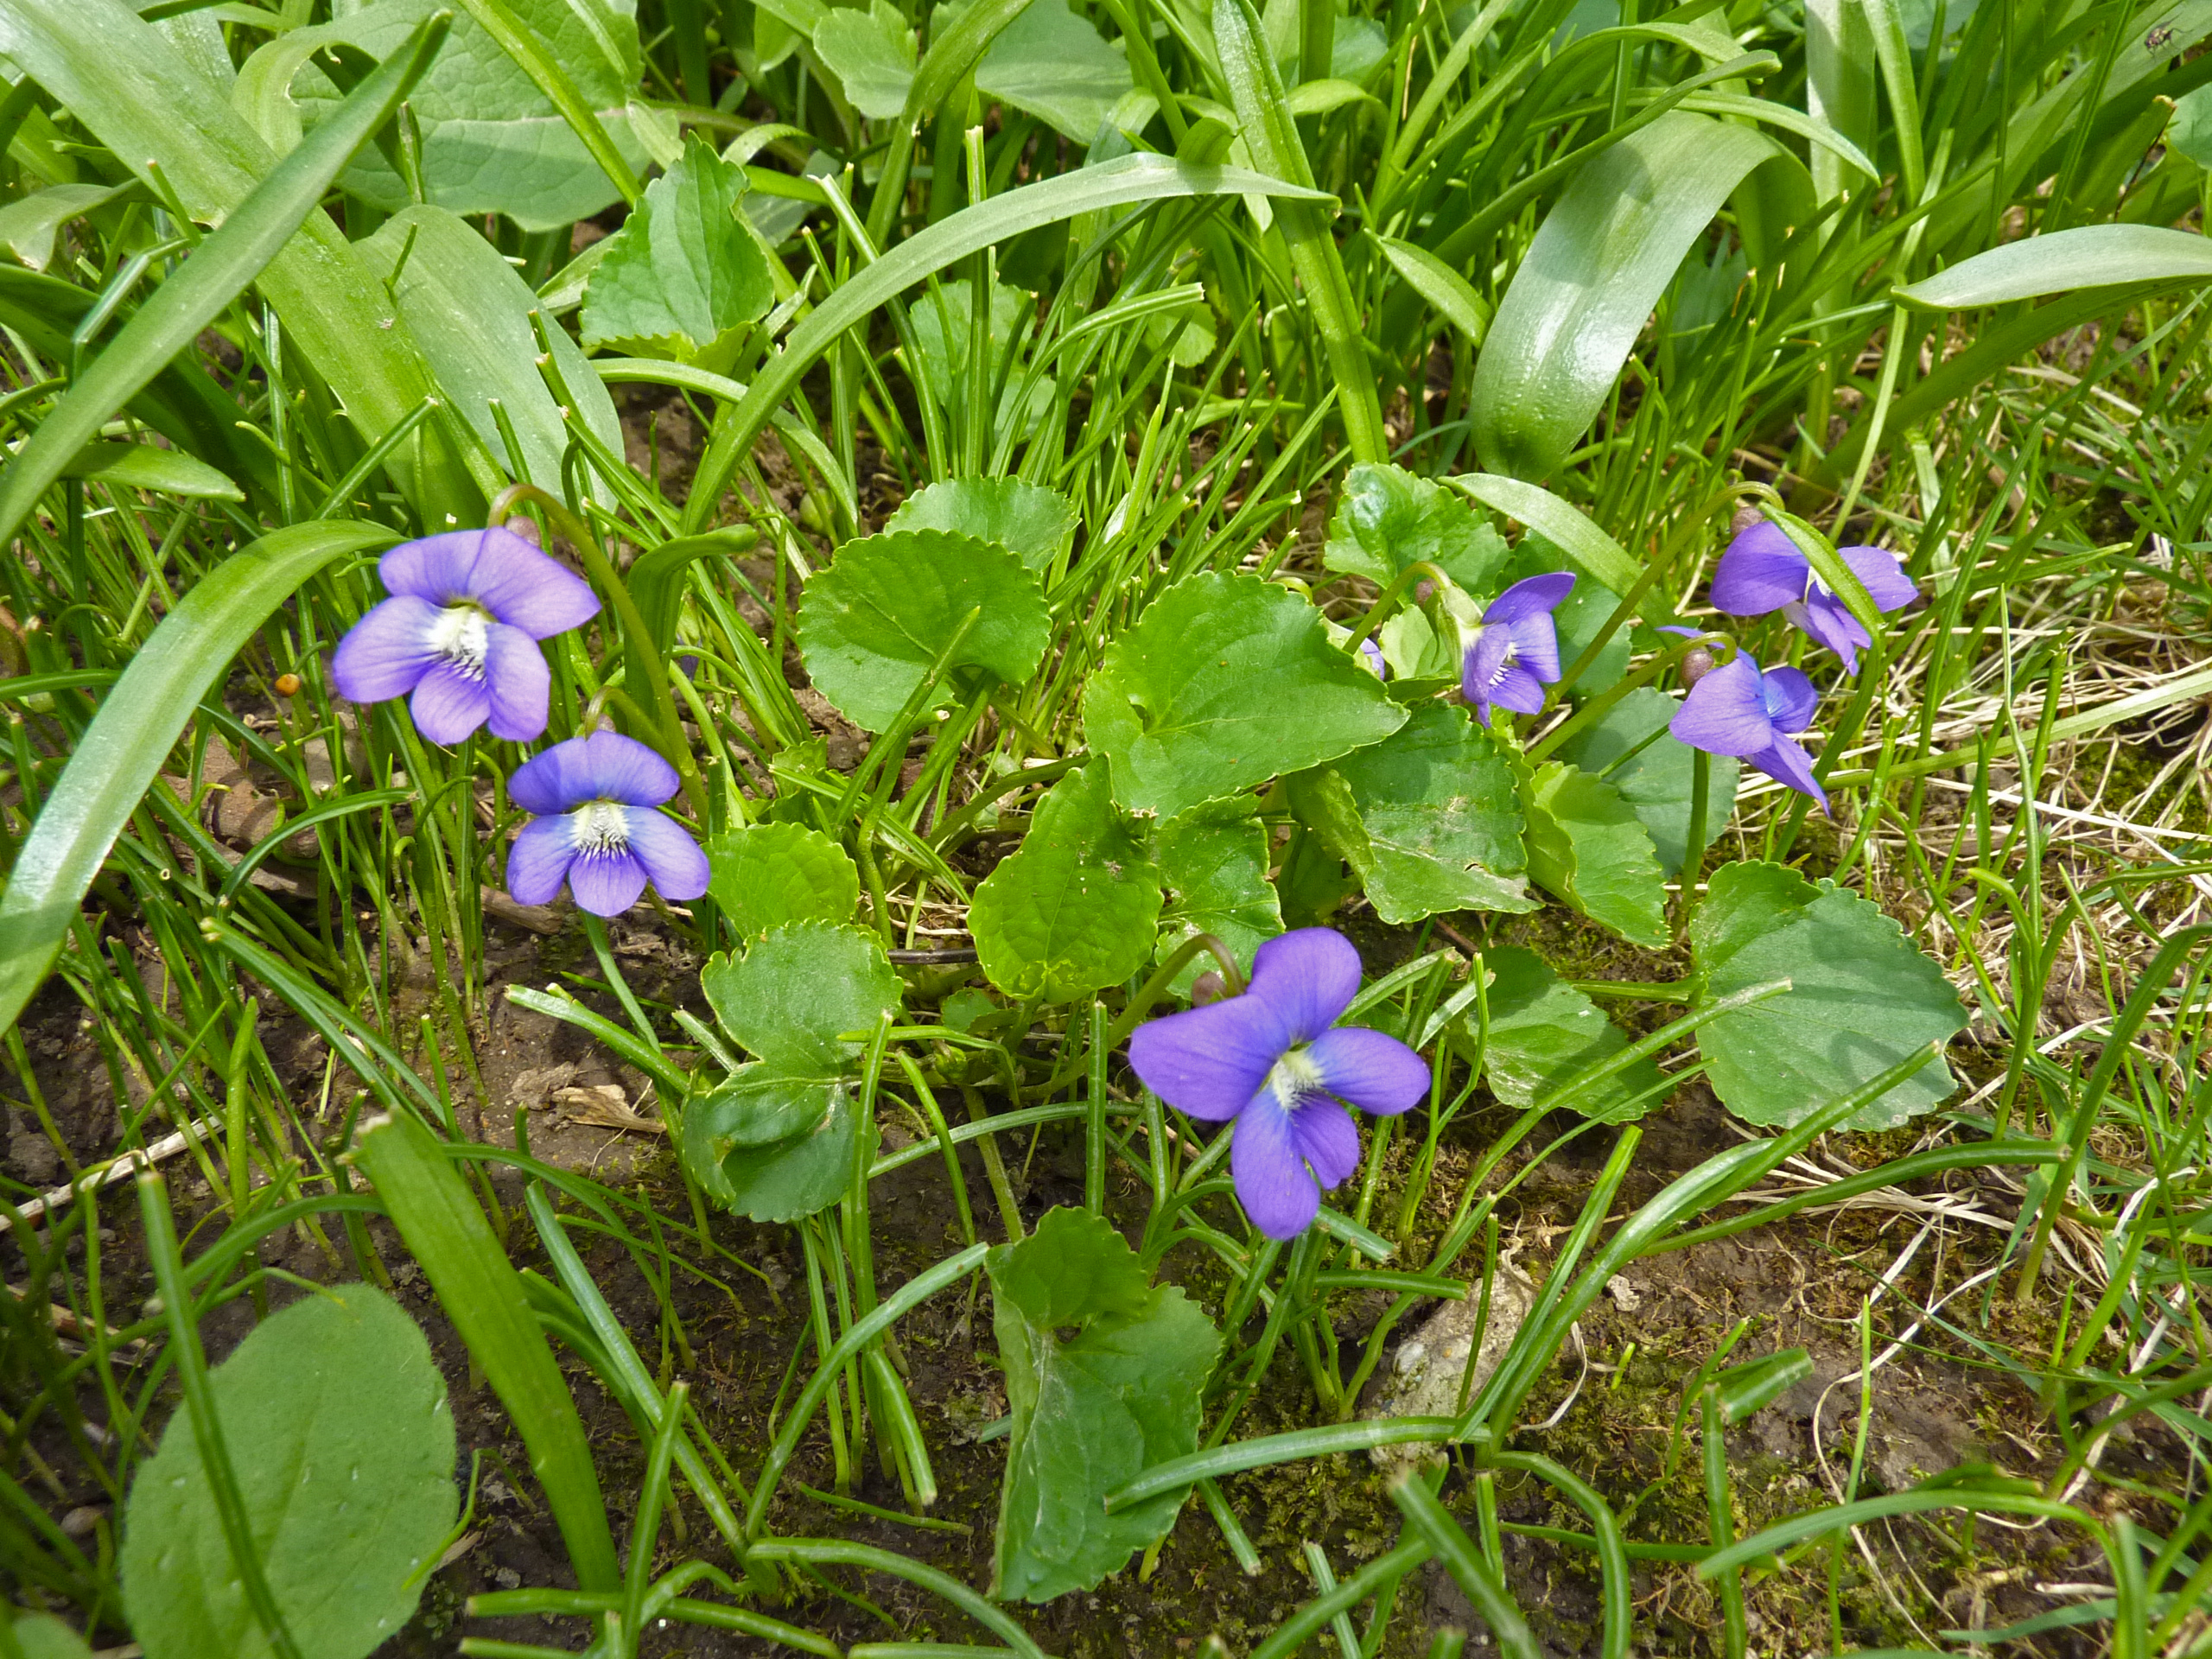 Image result for wild edible violets, creative commons